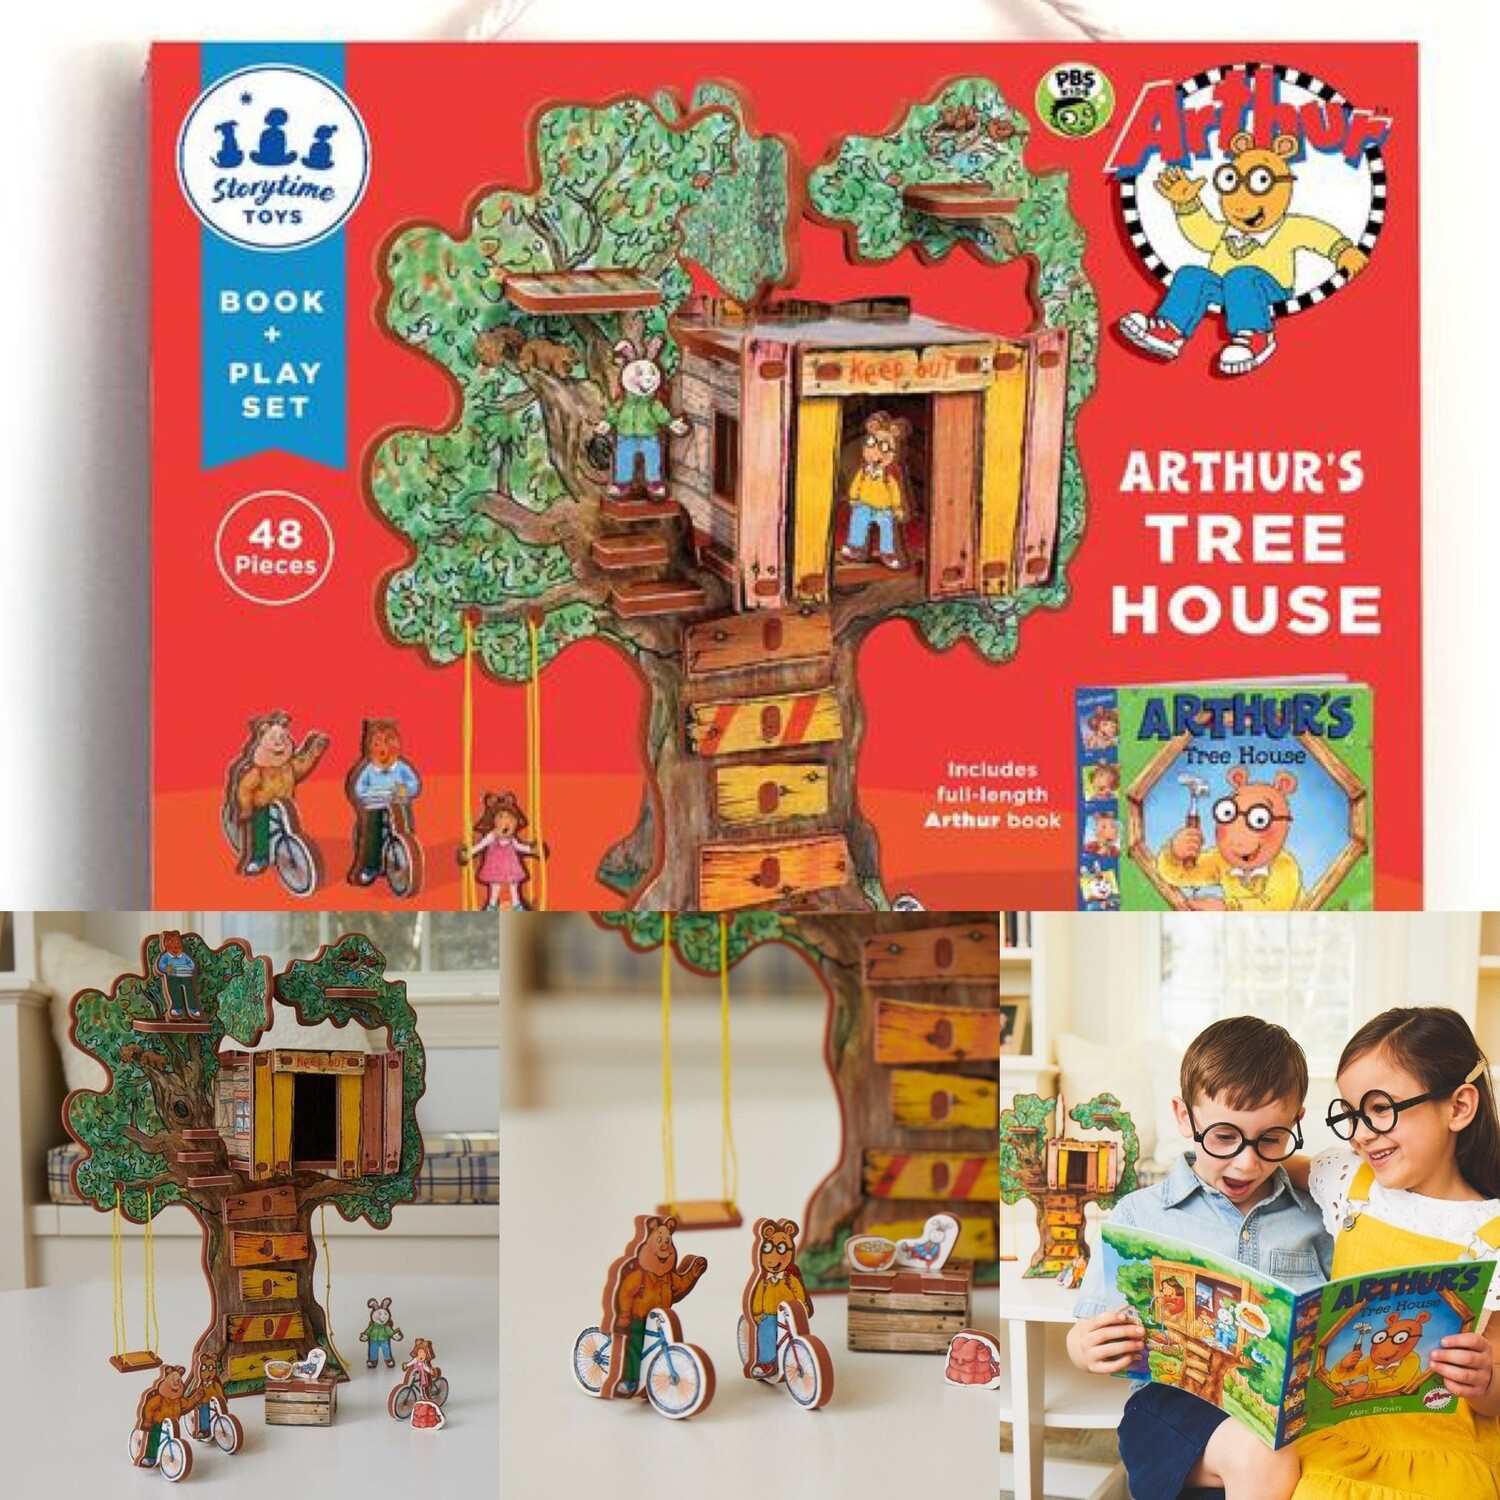 Arthur's Tree House 3D Imaginative Playset with Book